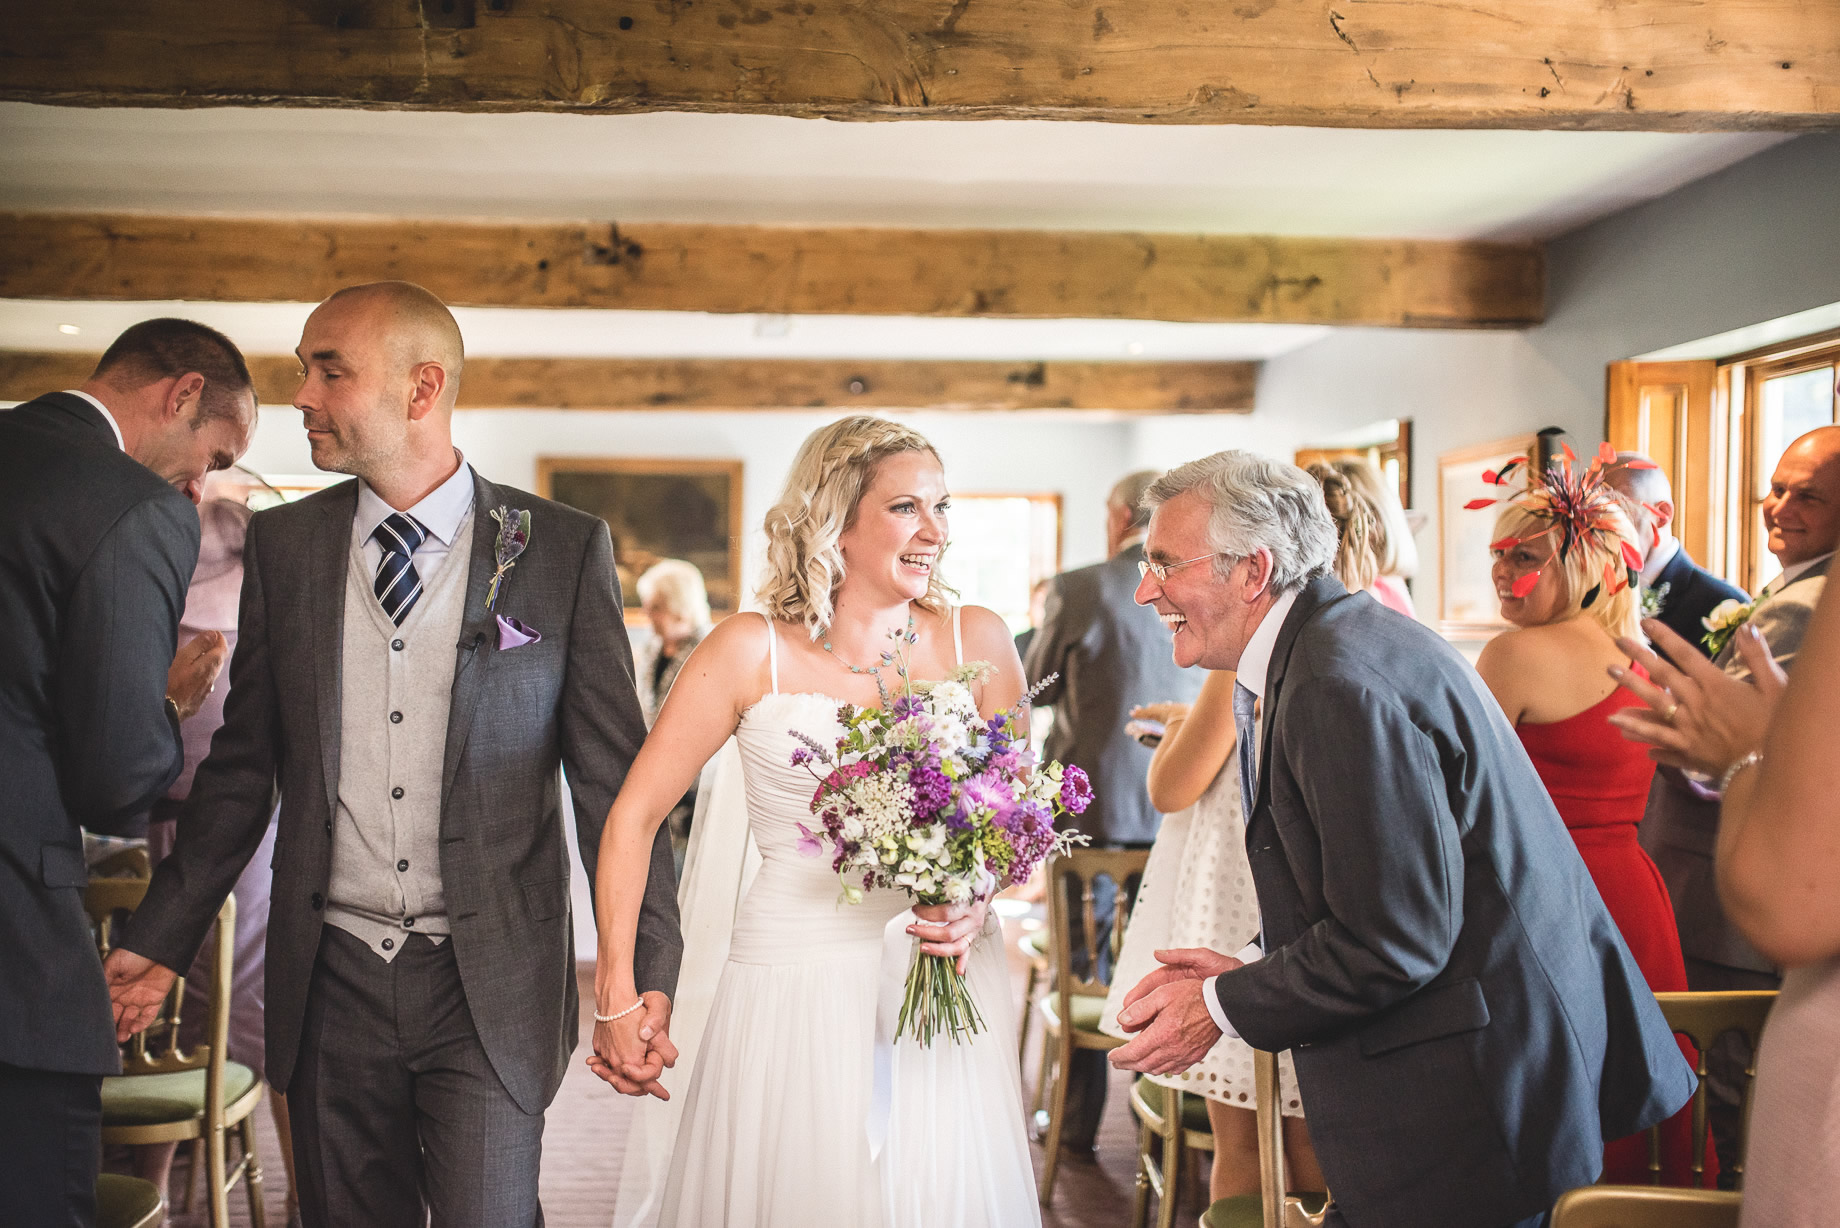 Tess and Paul's Wedding at The Inn at Whitewell 081